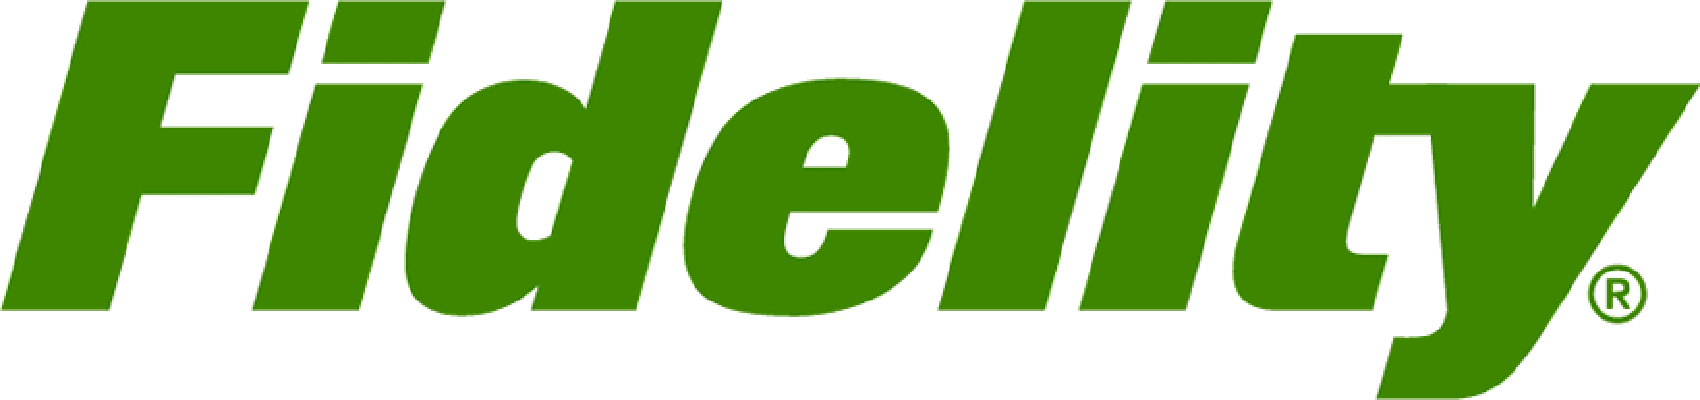 fidelity_investments_productcard-5c742f0e46e0fb000143628b.png